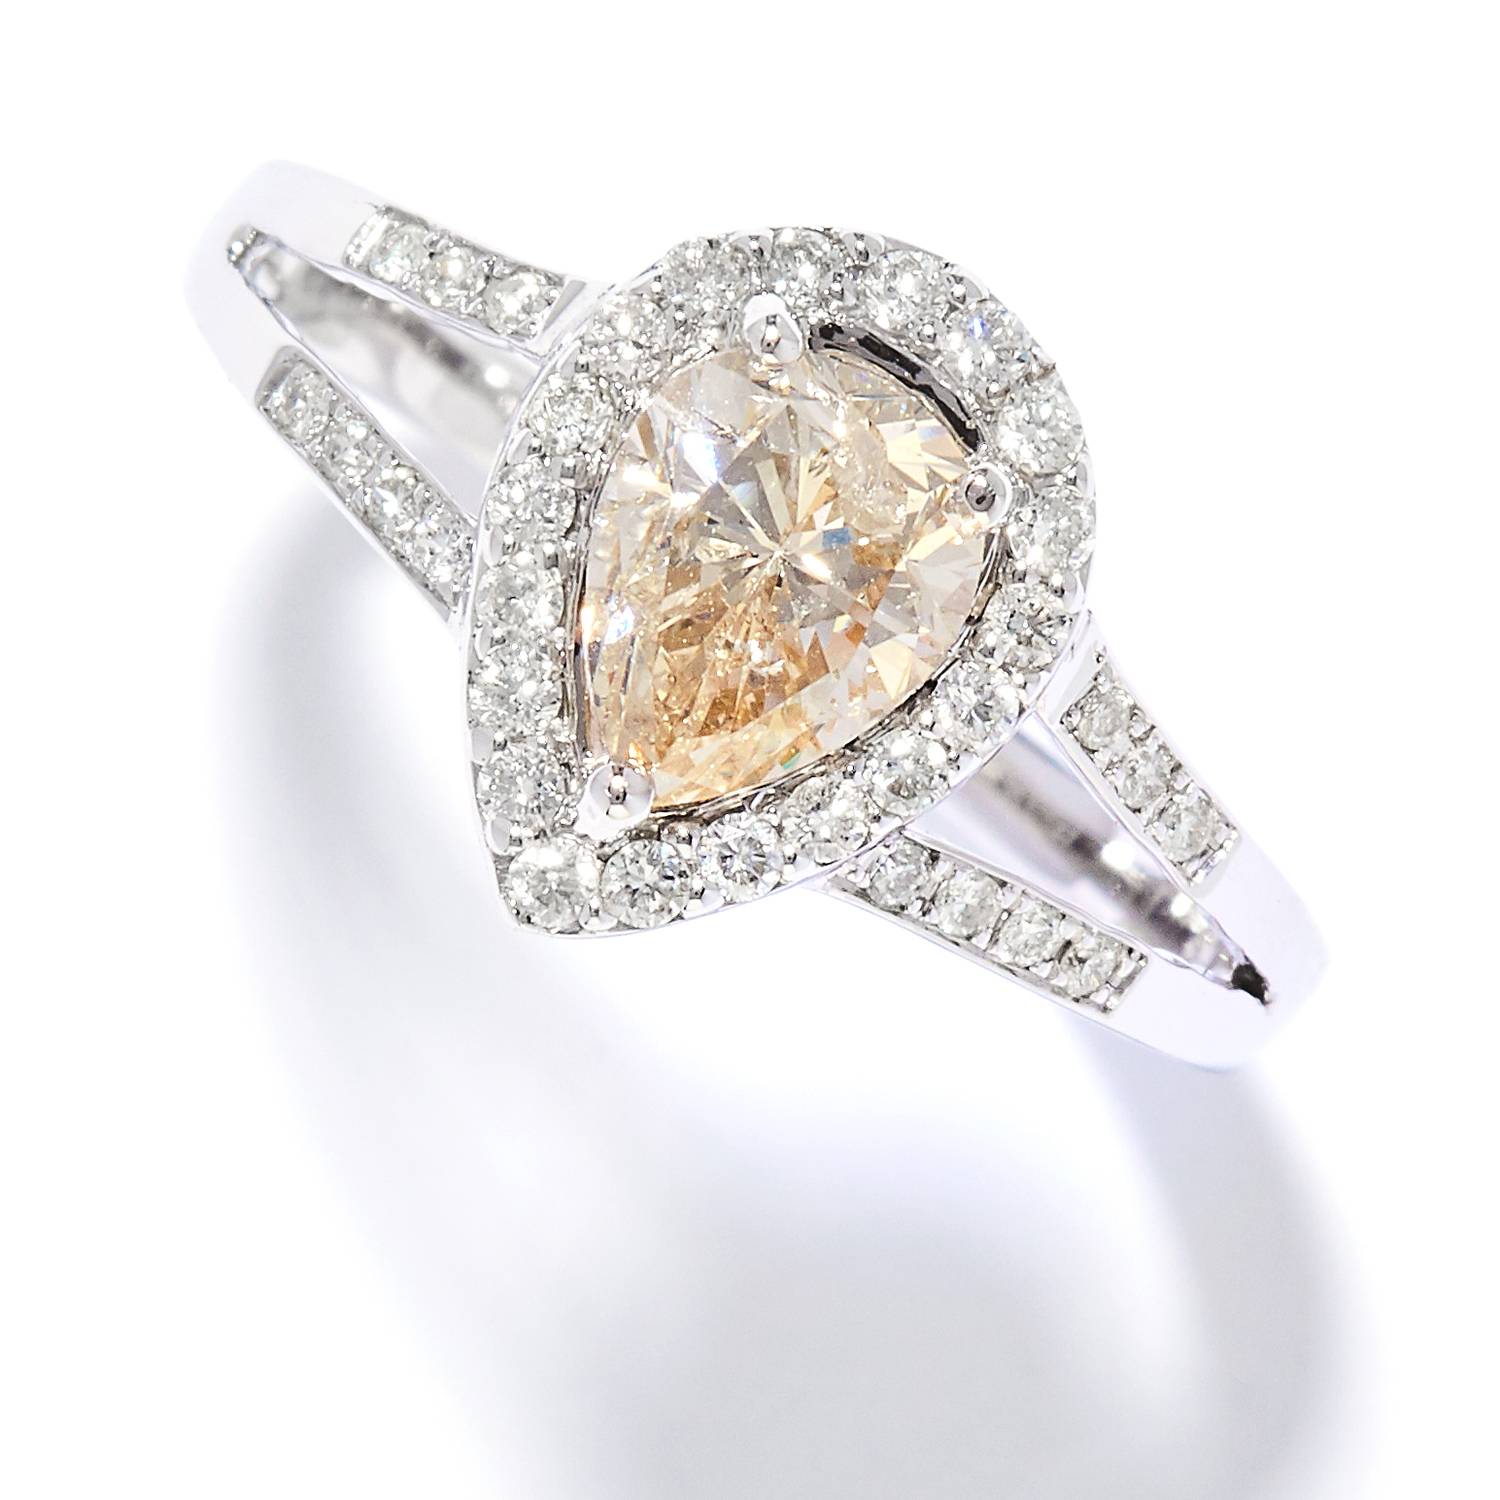 Los 16 - 1.01 CARAT DIAMOND DRESS RING in 18ct white gold, comprising of a pear cut diamond of